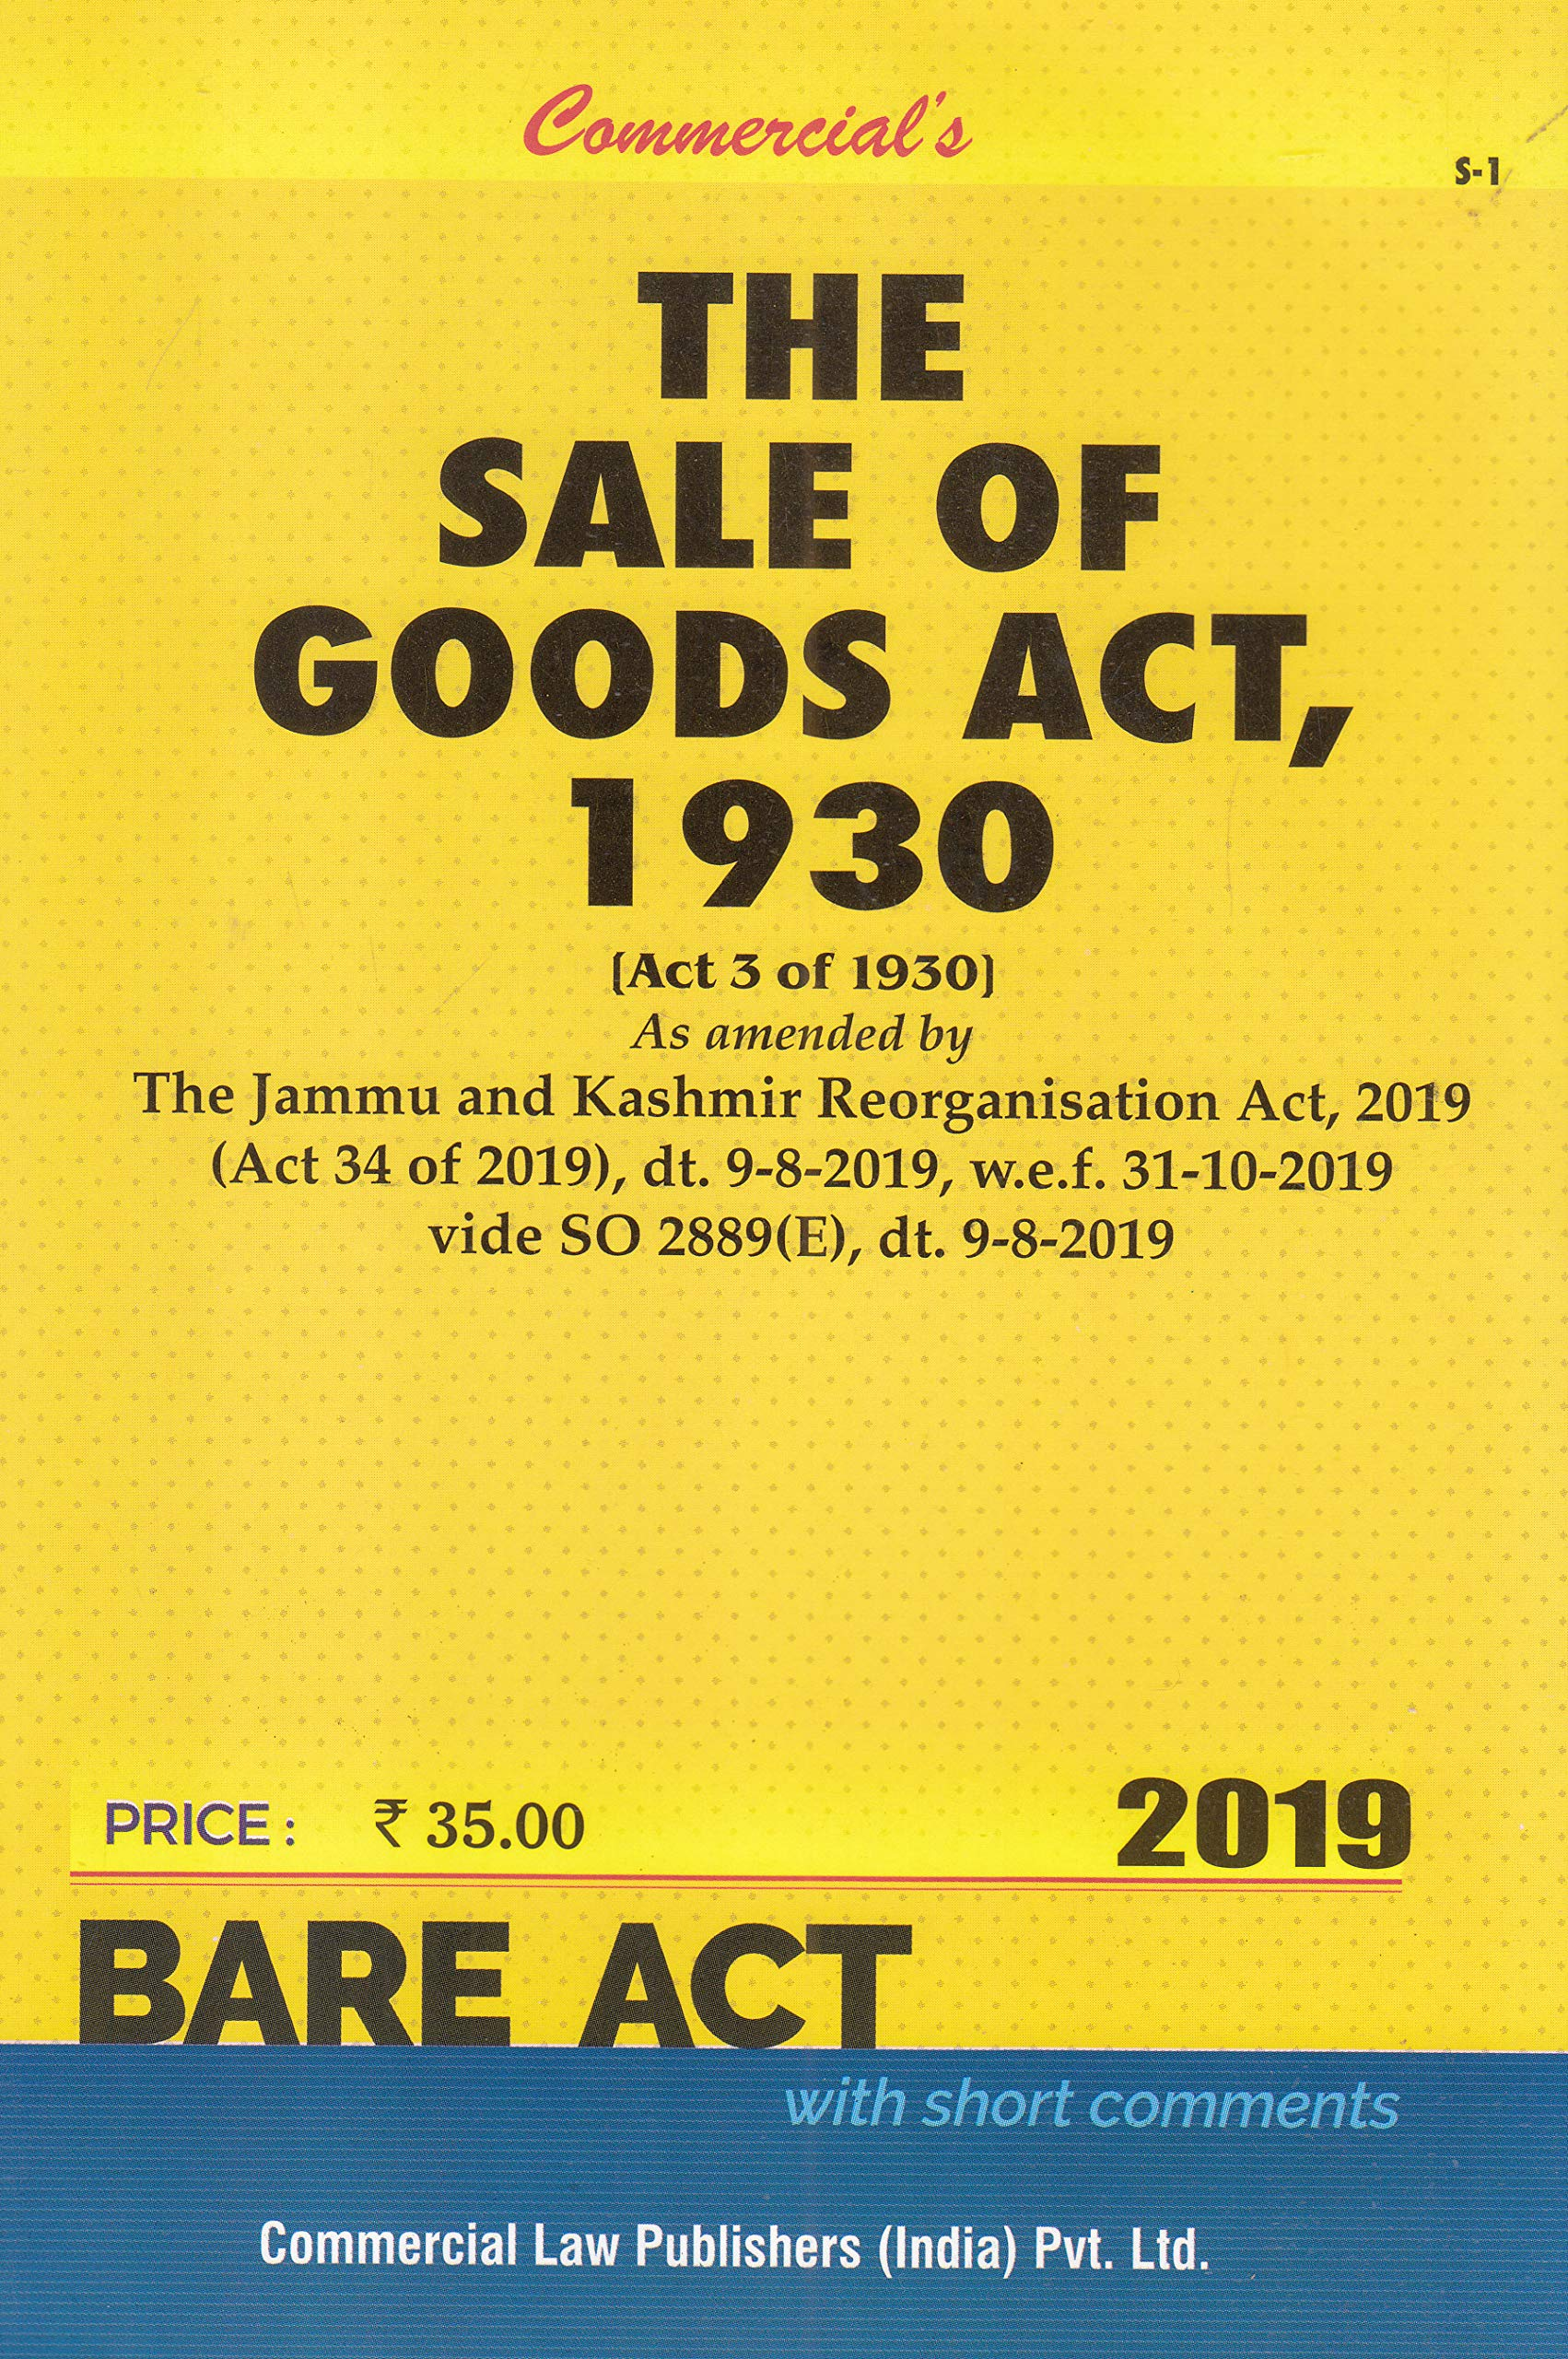 equivalent us of sale act goods